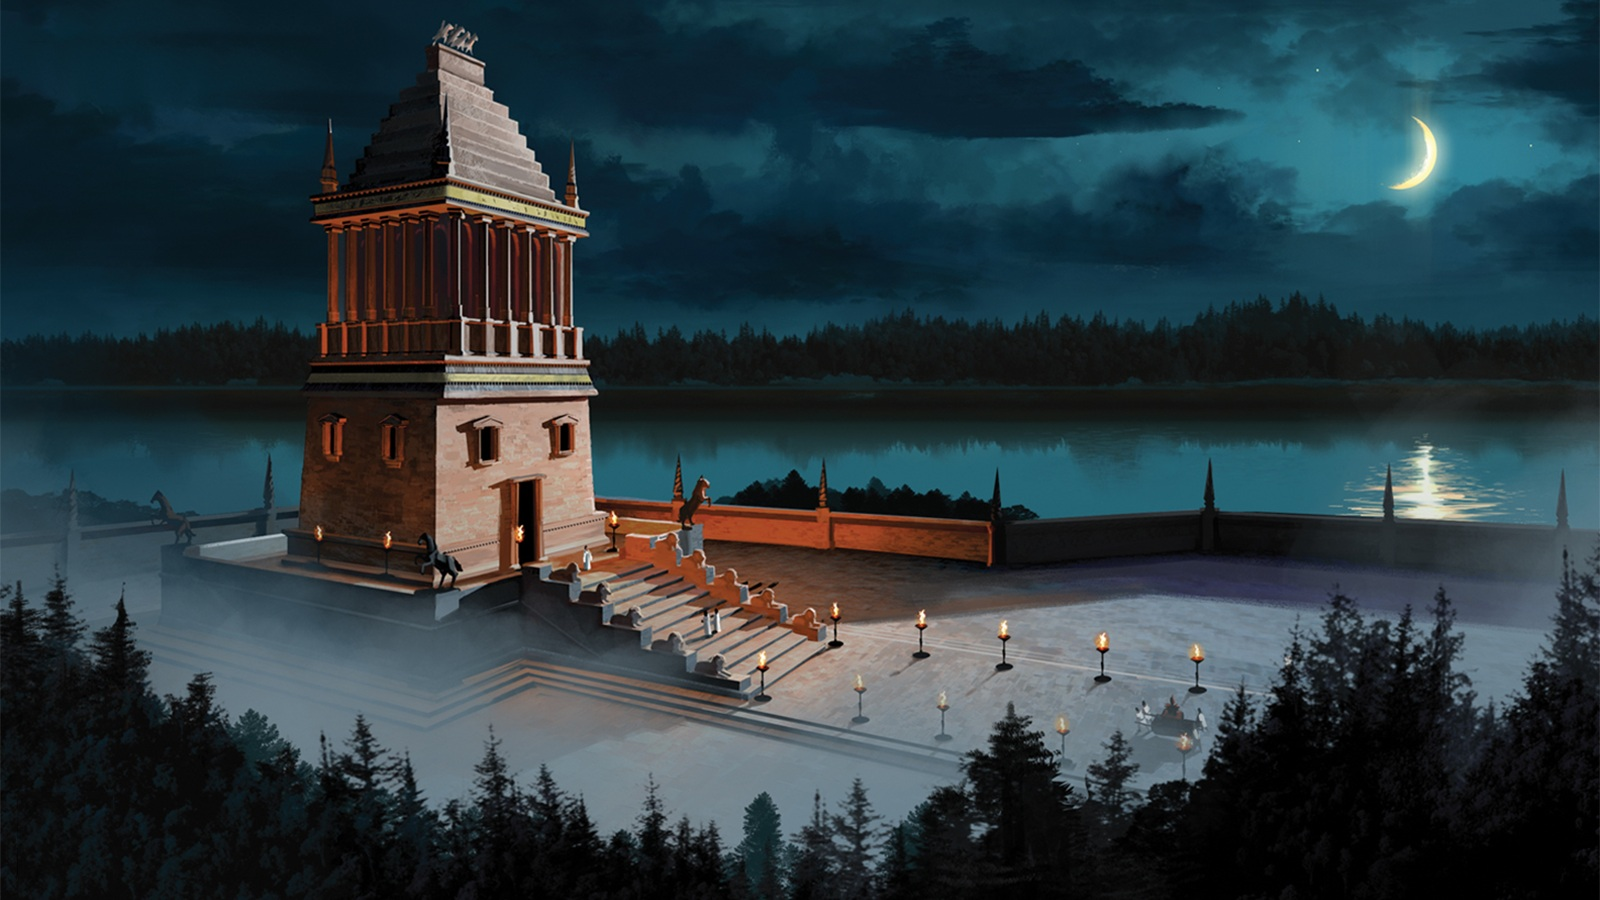 How To Use A Gif As A Wallpaper Iphone Mausoleum At Halicarnassus Wallpaper And Background Image